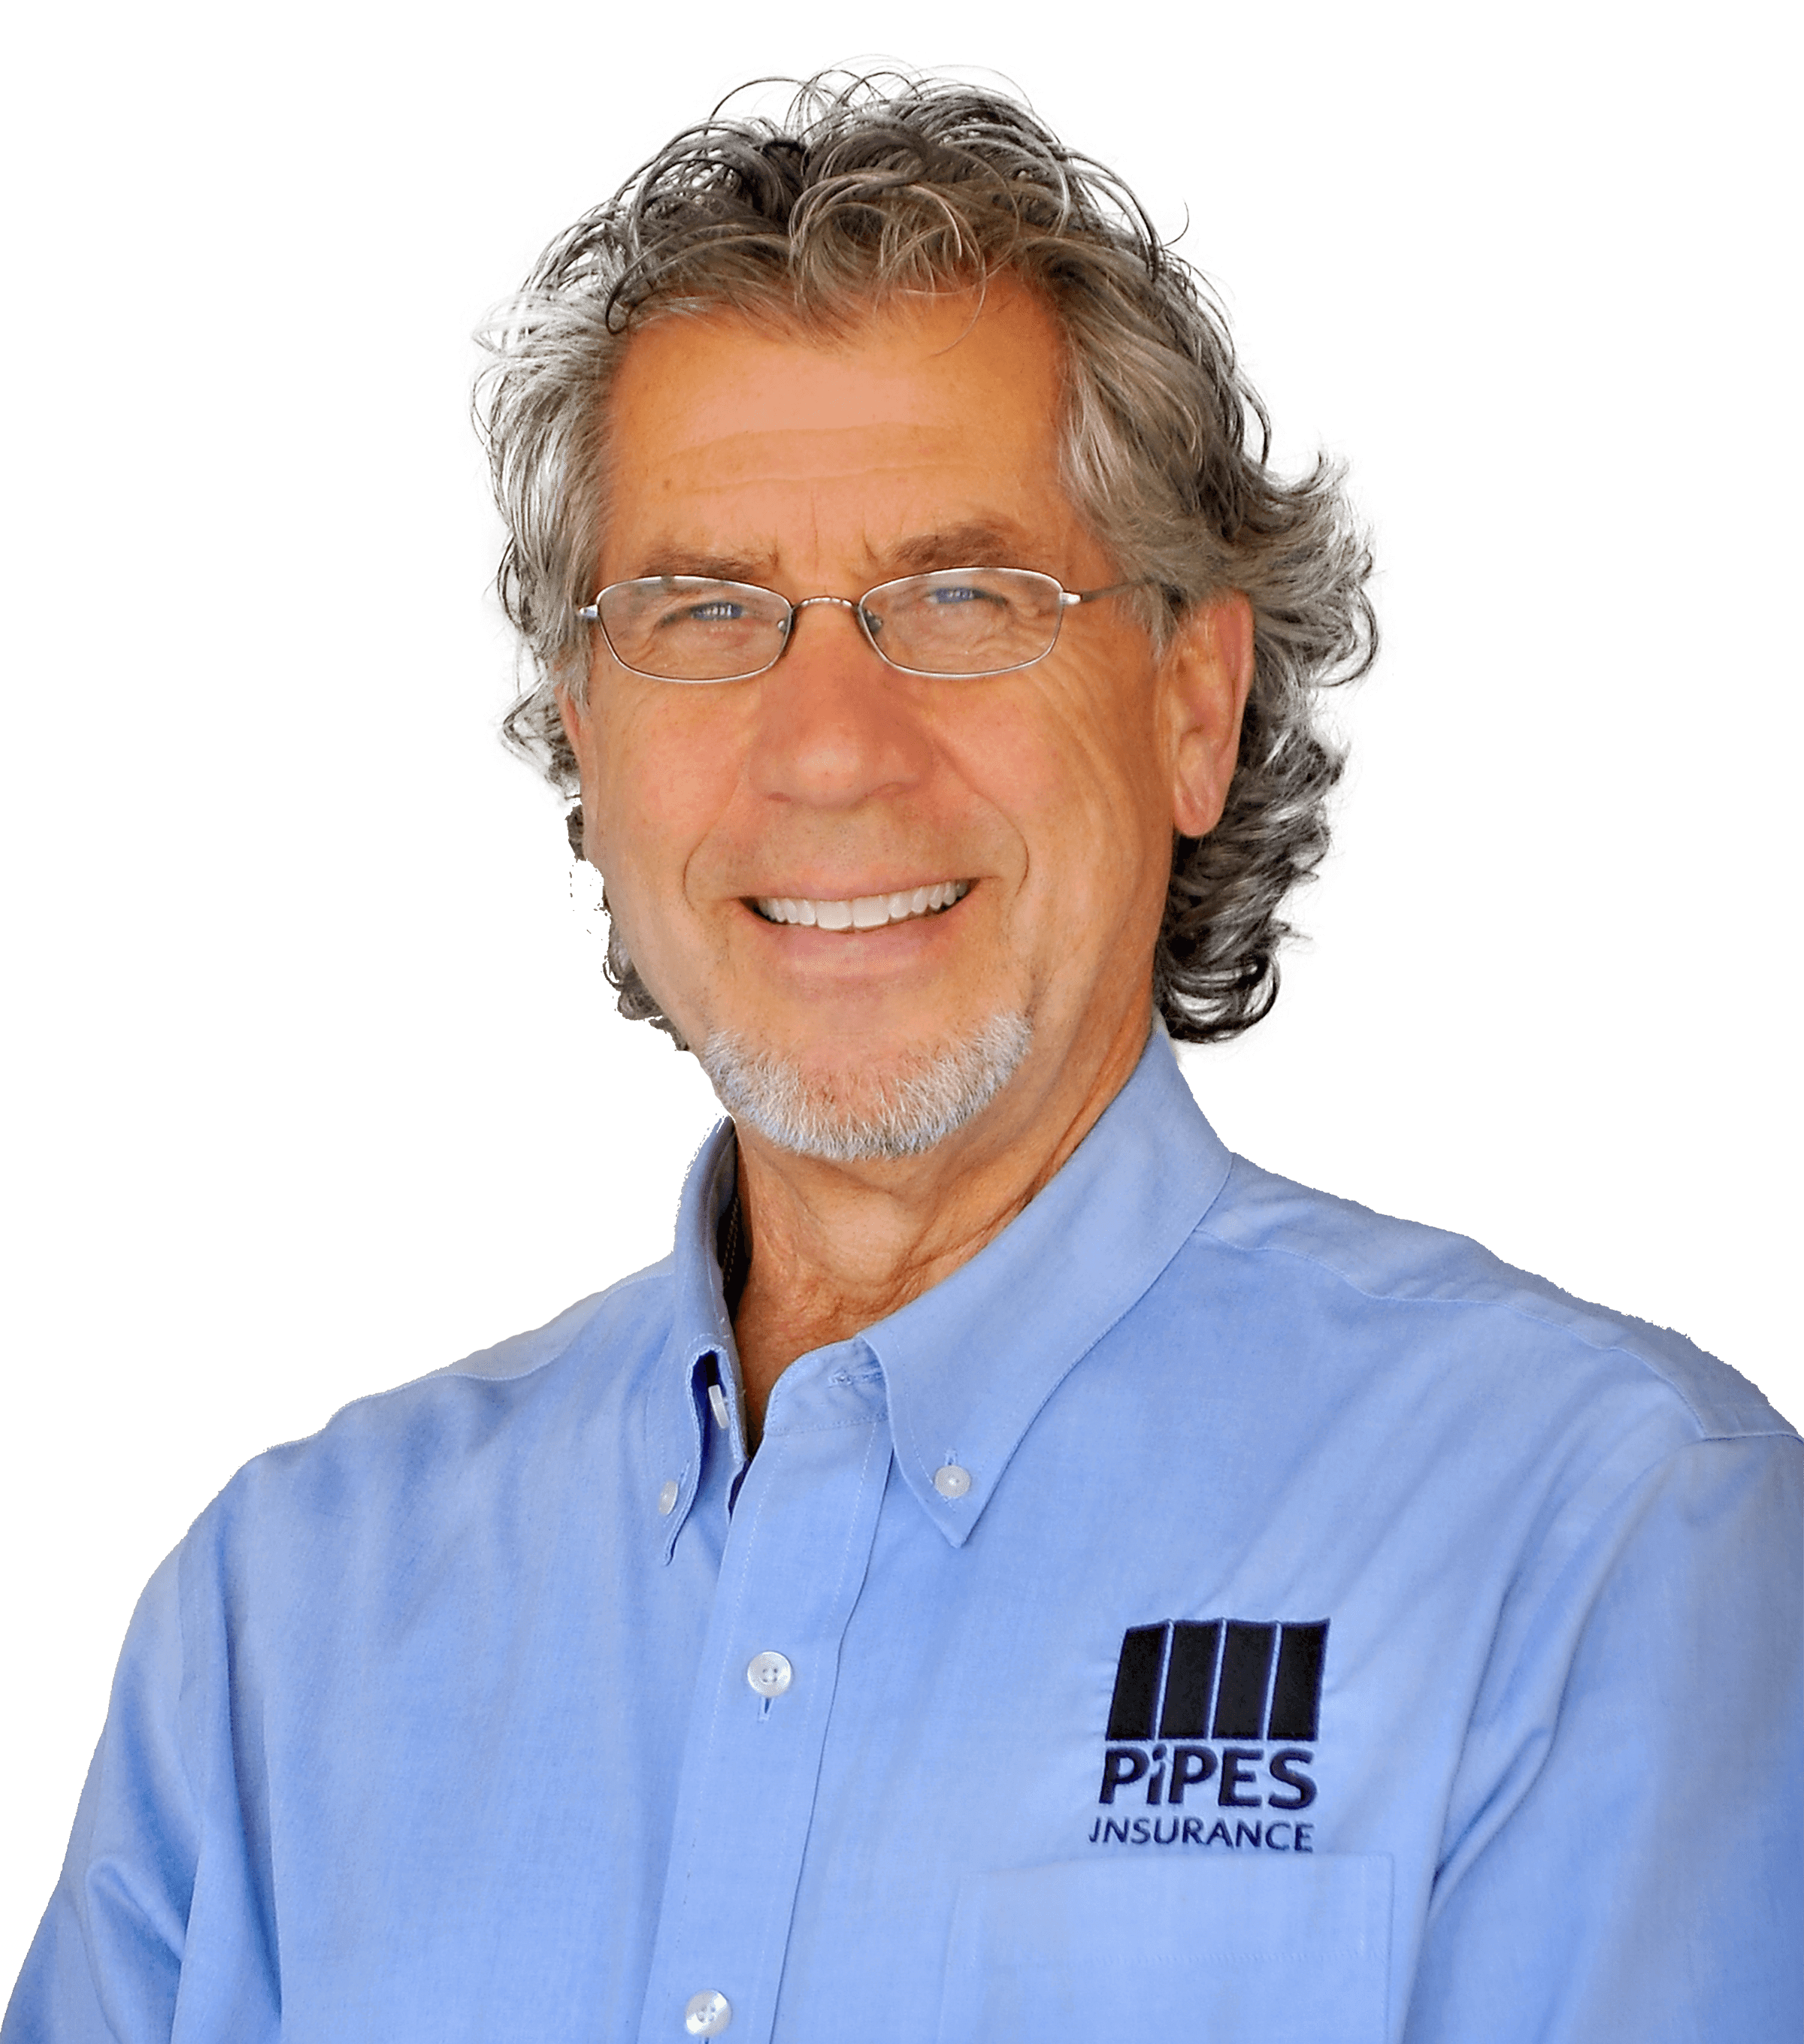 Pipes Insurance Service Team: Jack Stahl, Individual Health Agent